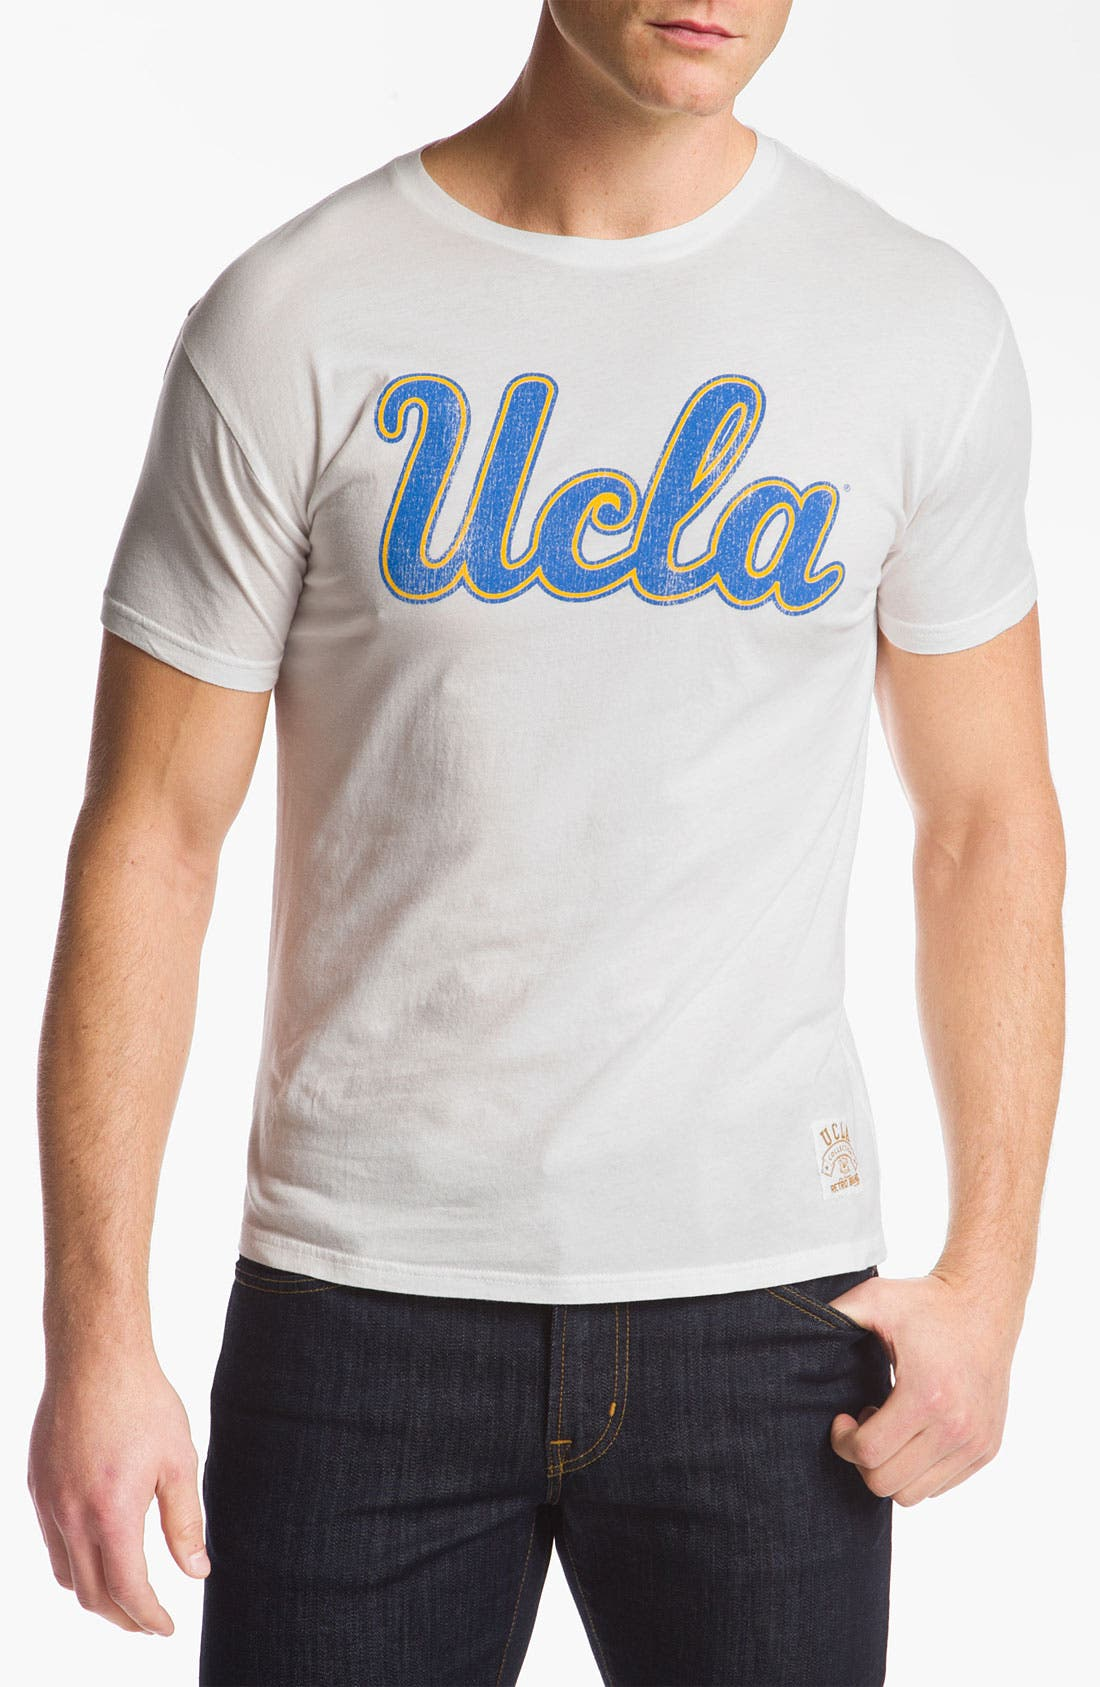 Main Image - The Original Retro Brand 'UCLA' T-Shirt